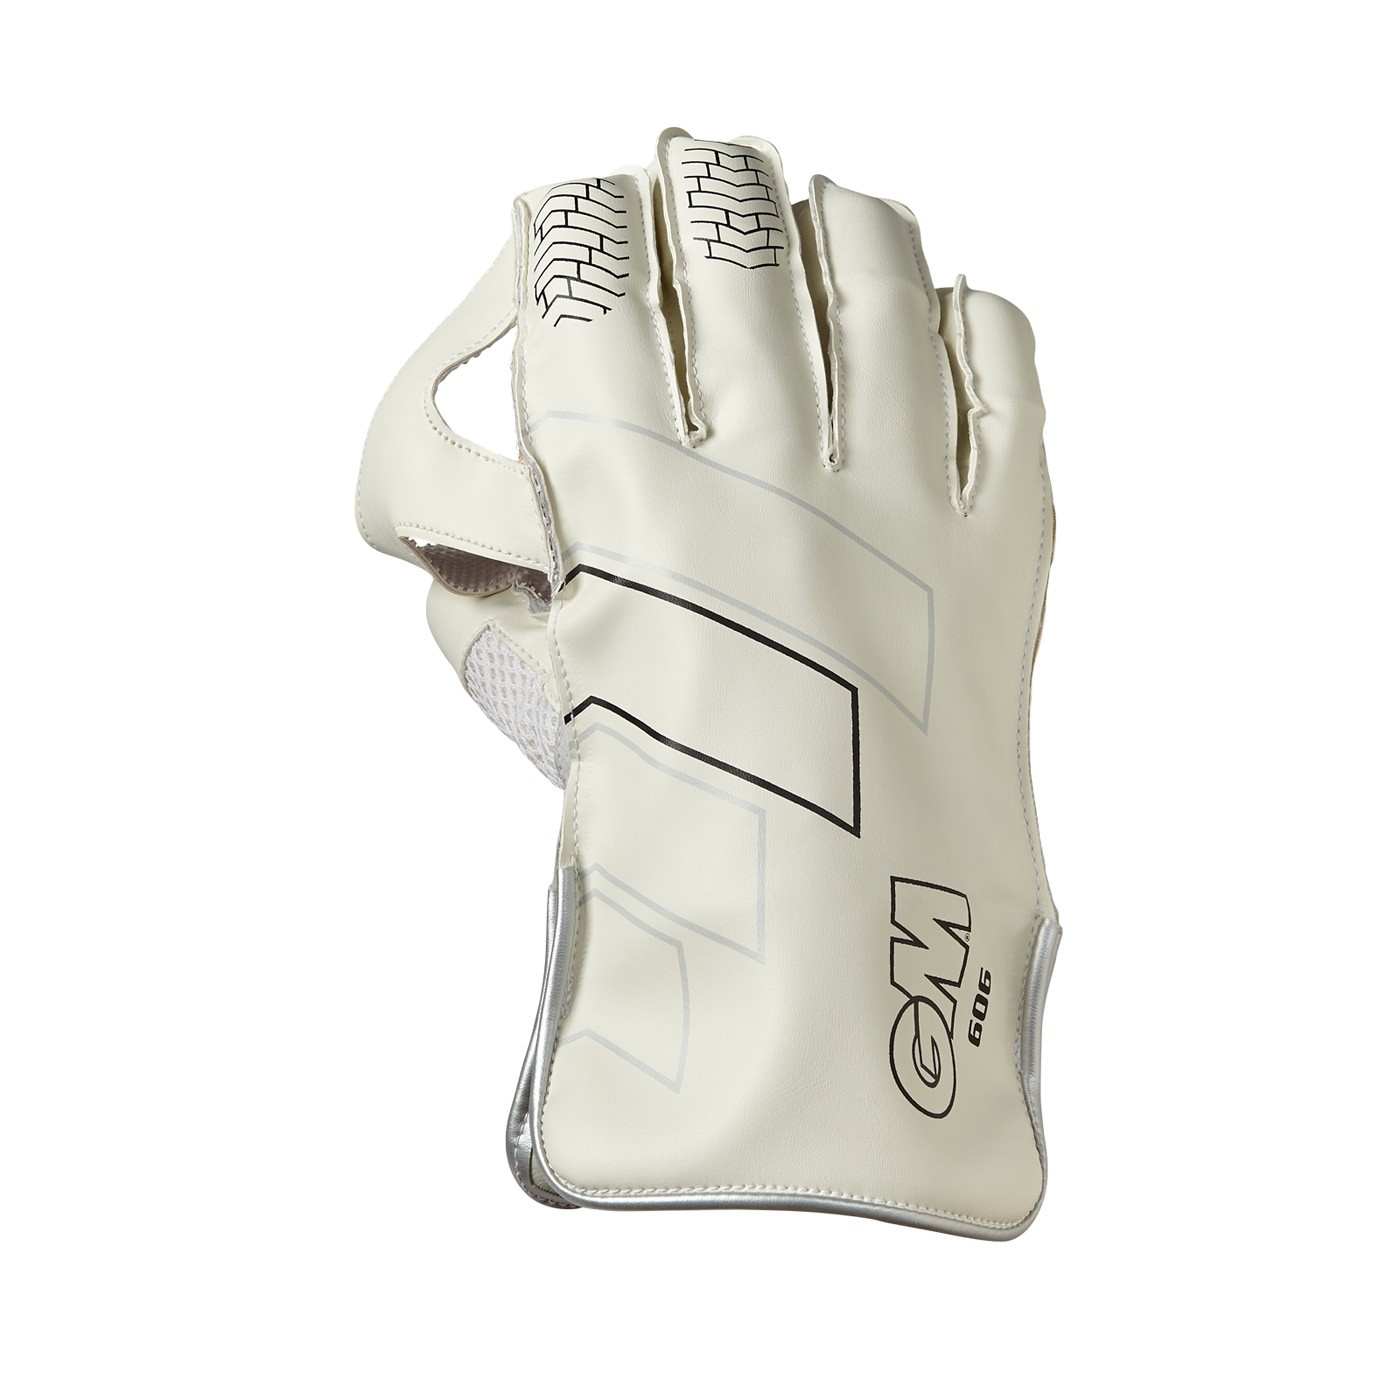 2021 Gunn and Moore 606 Wicket Keeping Gloves